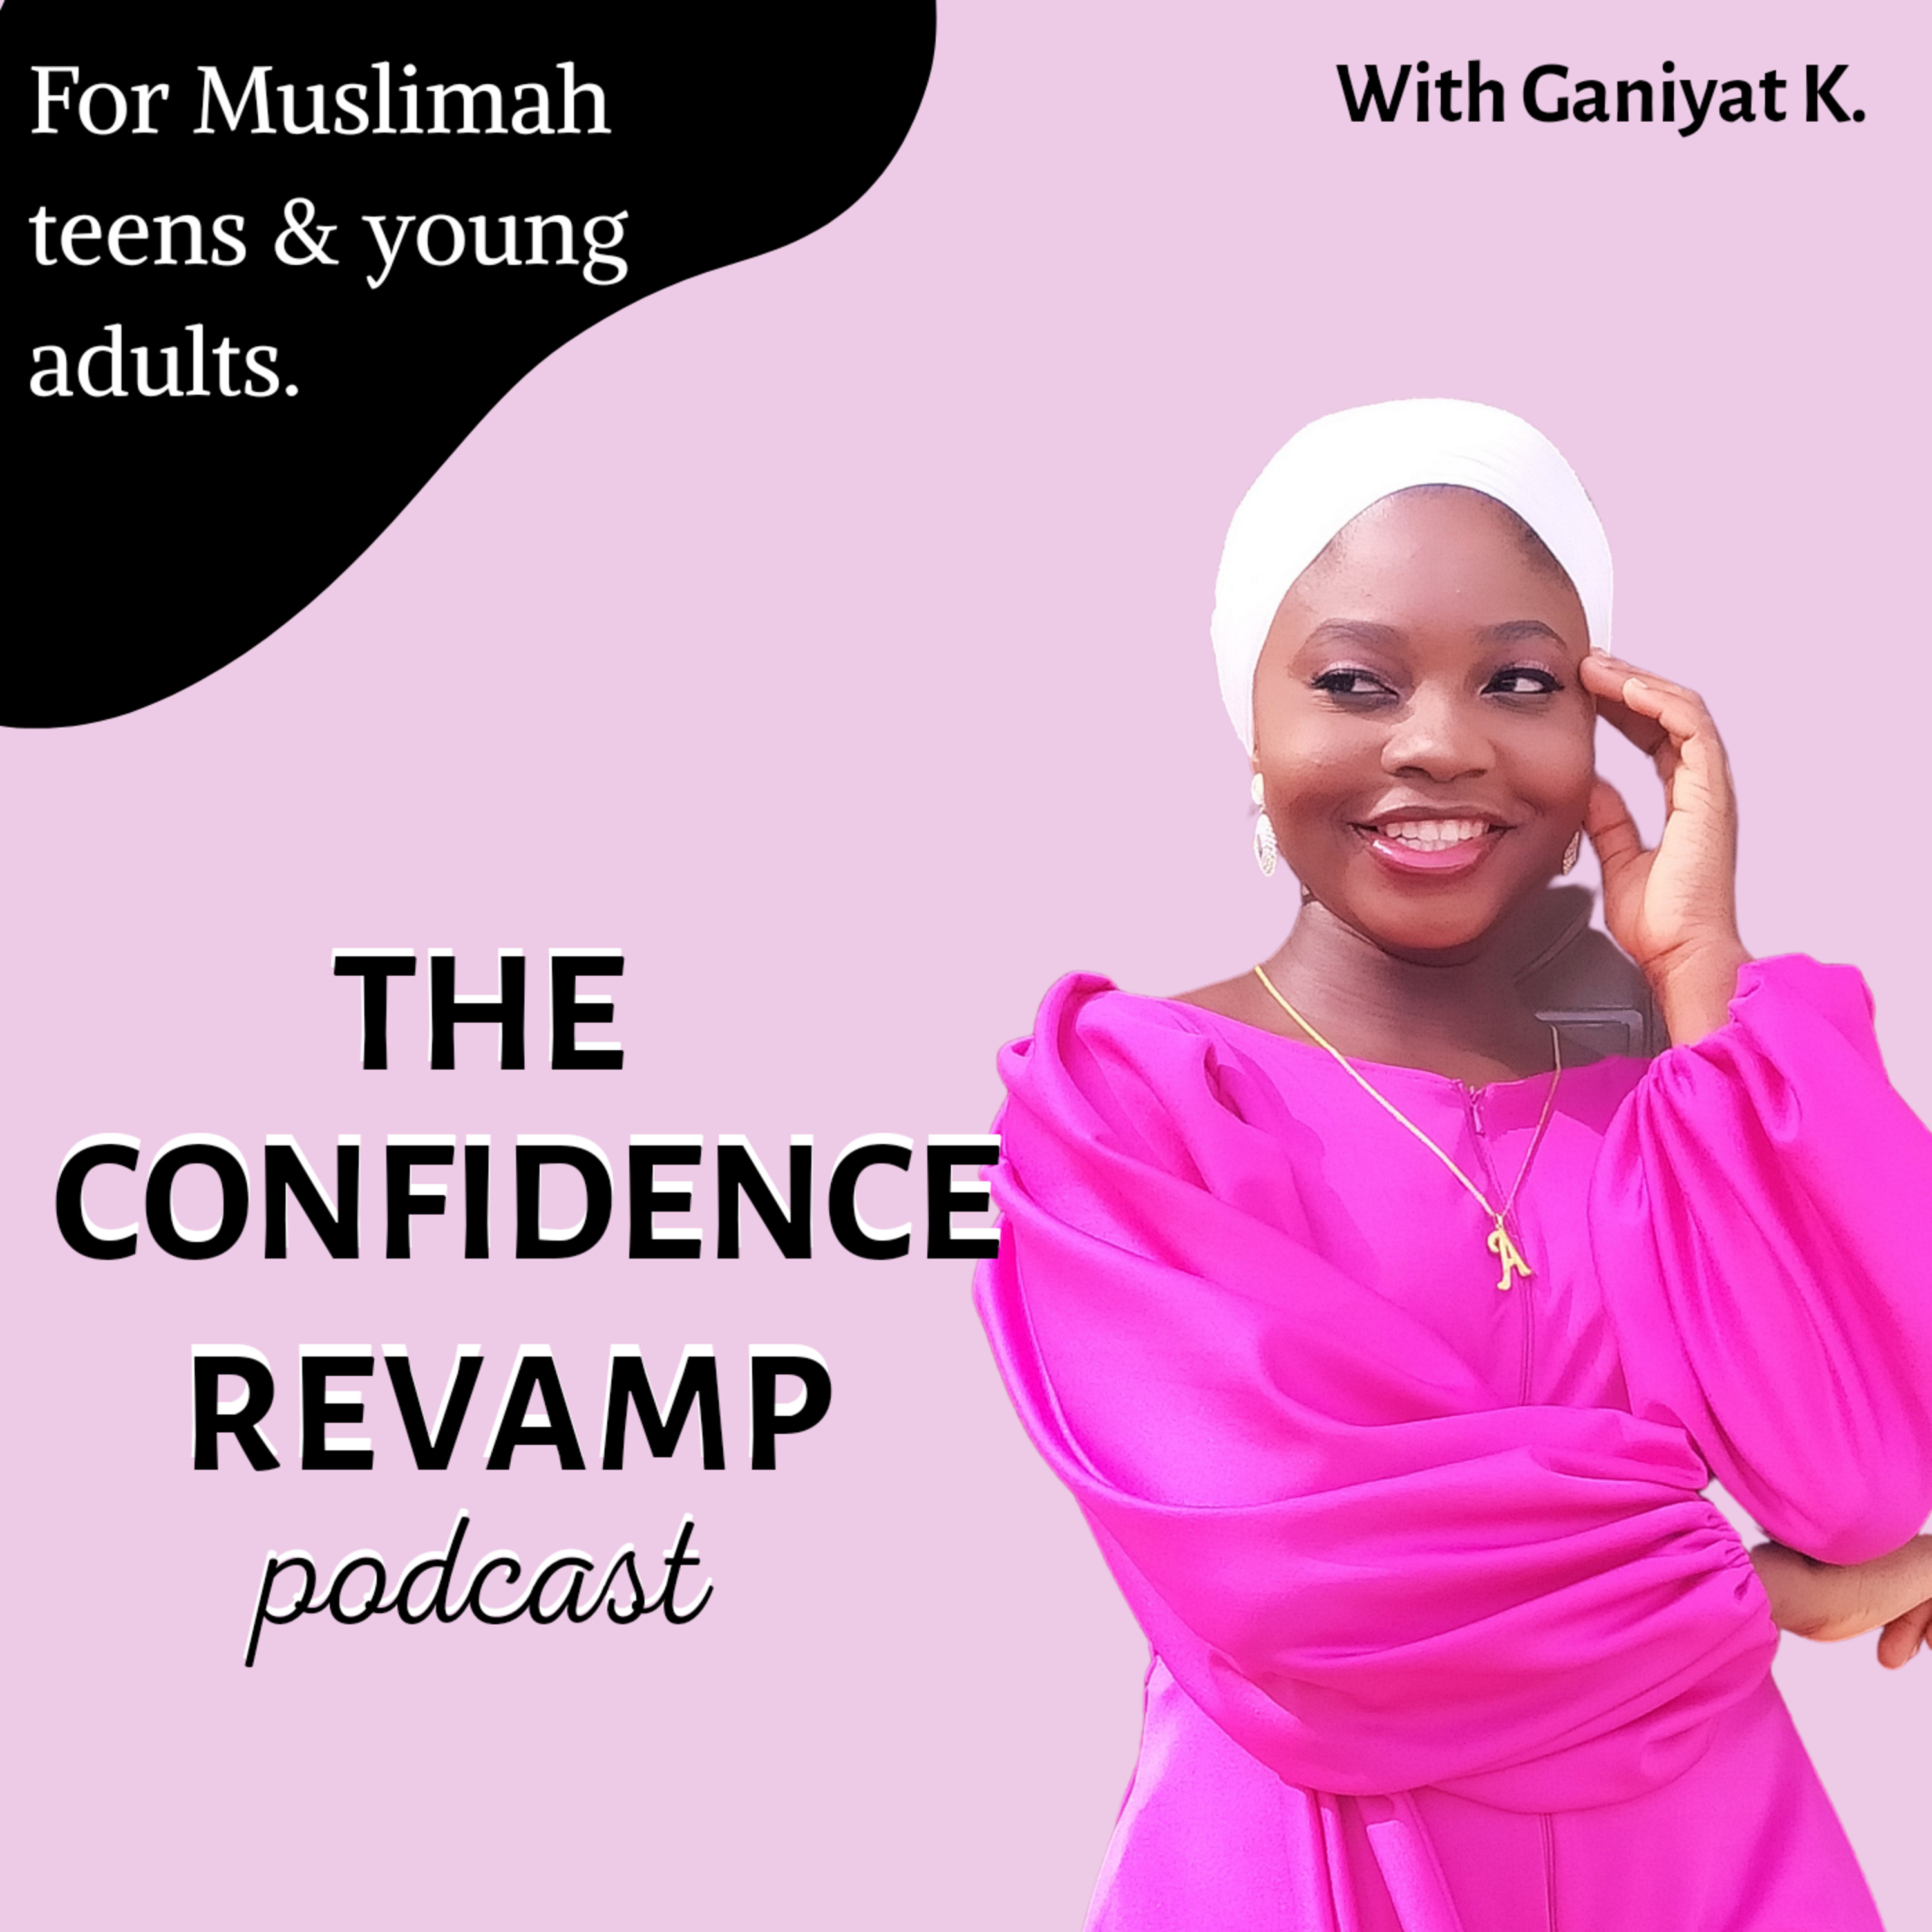 The Confidence Revamp Podcast podcast